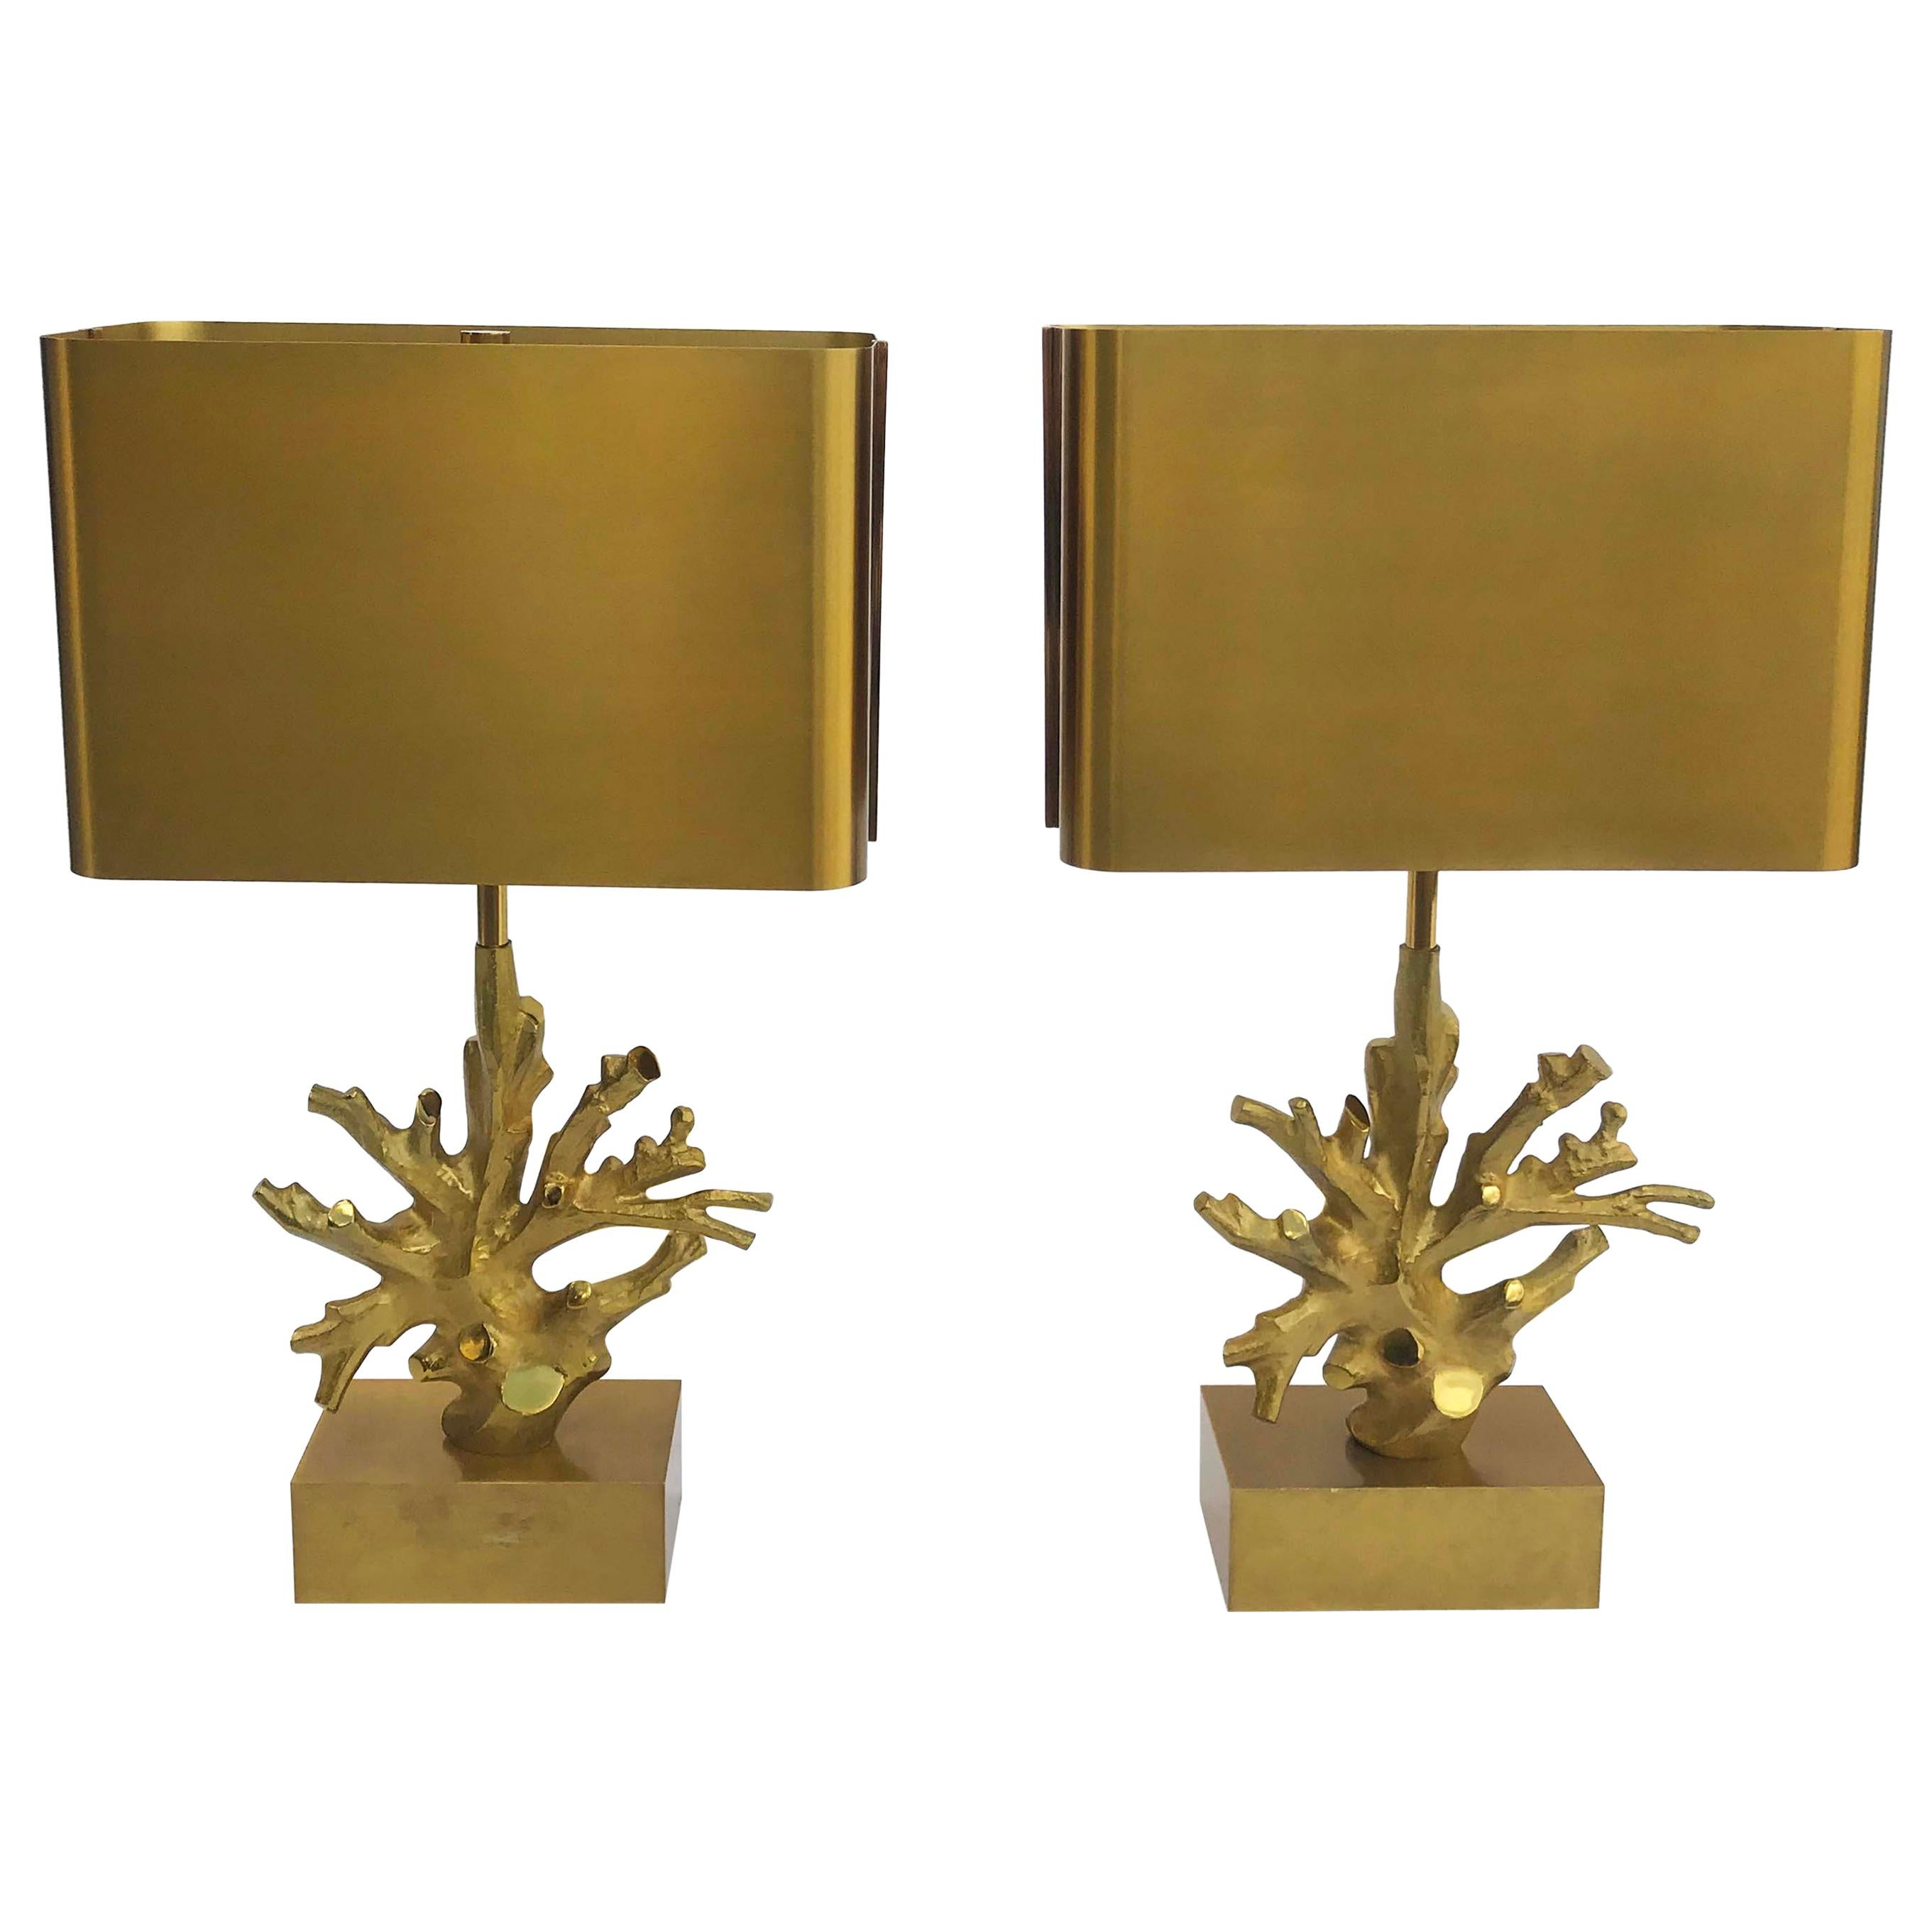 Pair of Signed Maison Charles Table Lamp